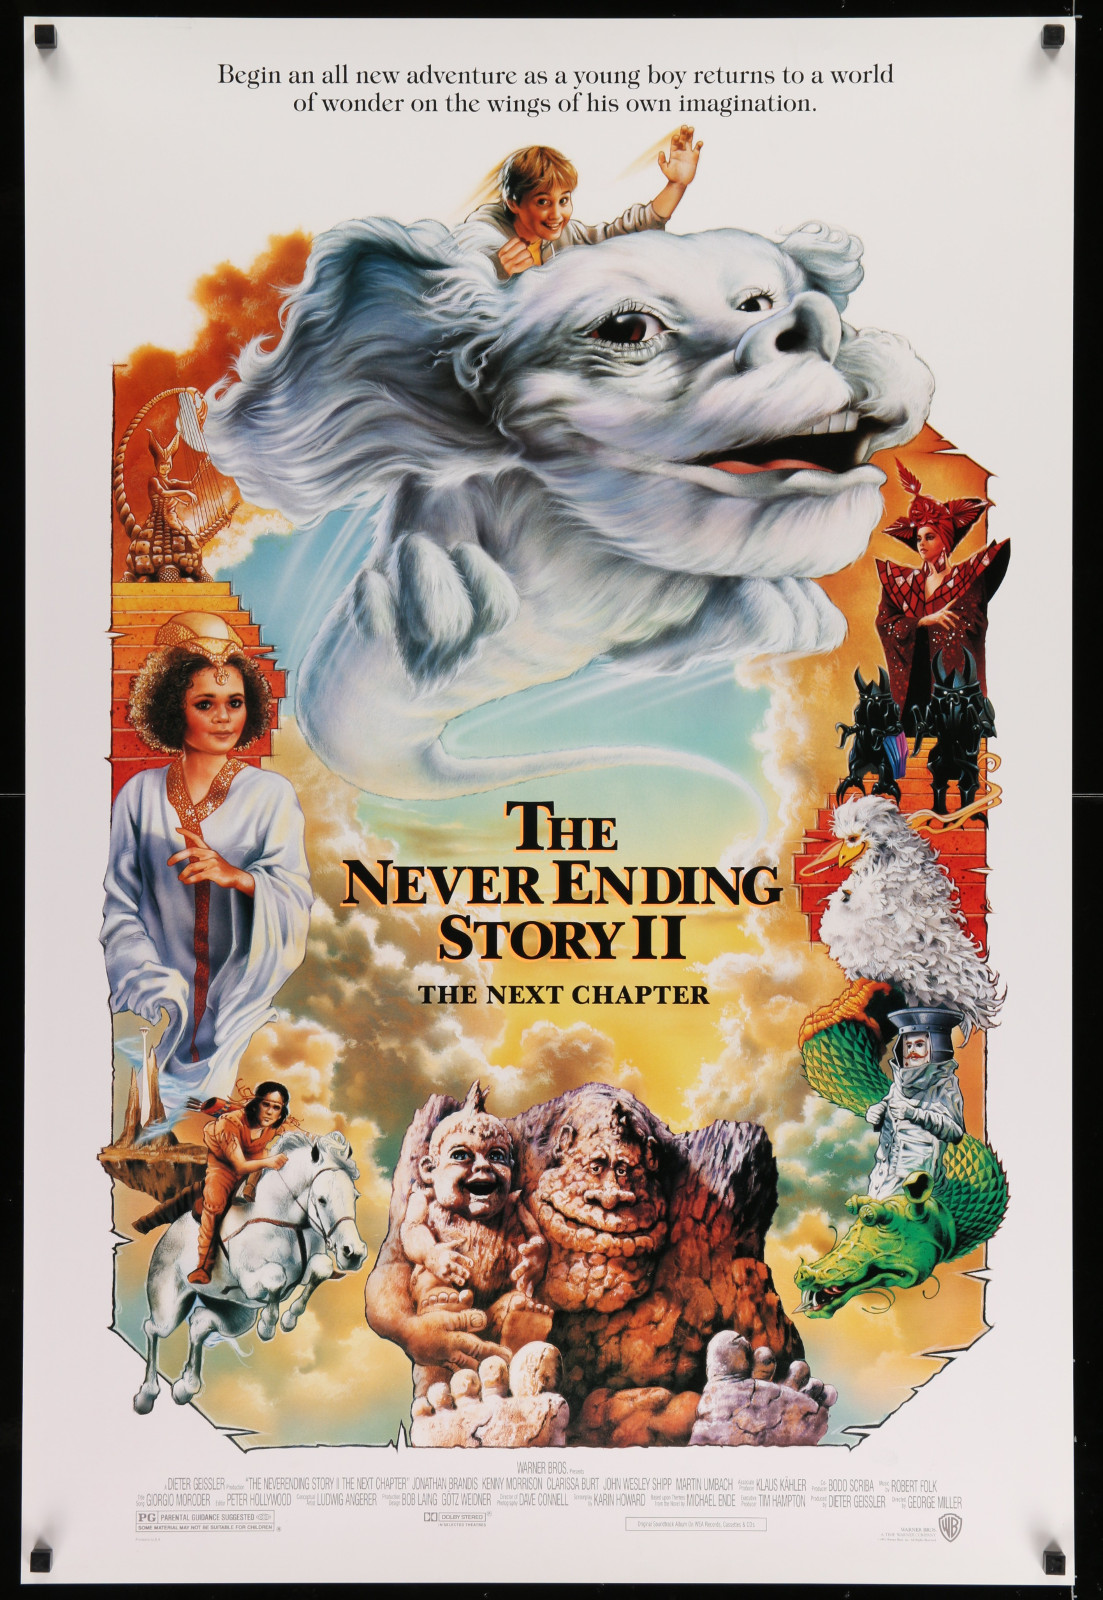 The Never Ending Story Ii 2A446 A Part Of A Lot 17 Unfolded Mostly Double-Sided 27X40 One-Sheets '90S-00S Great Movie Images!